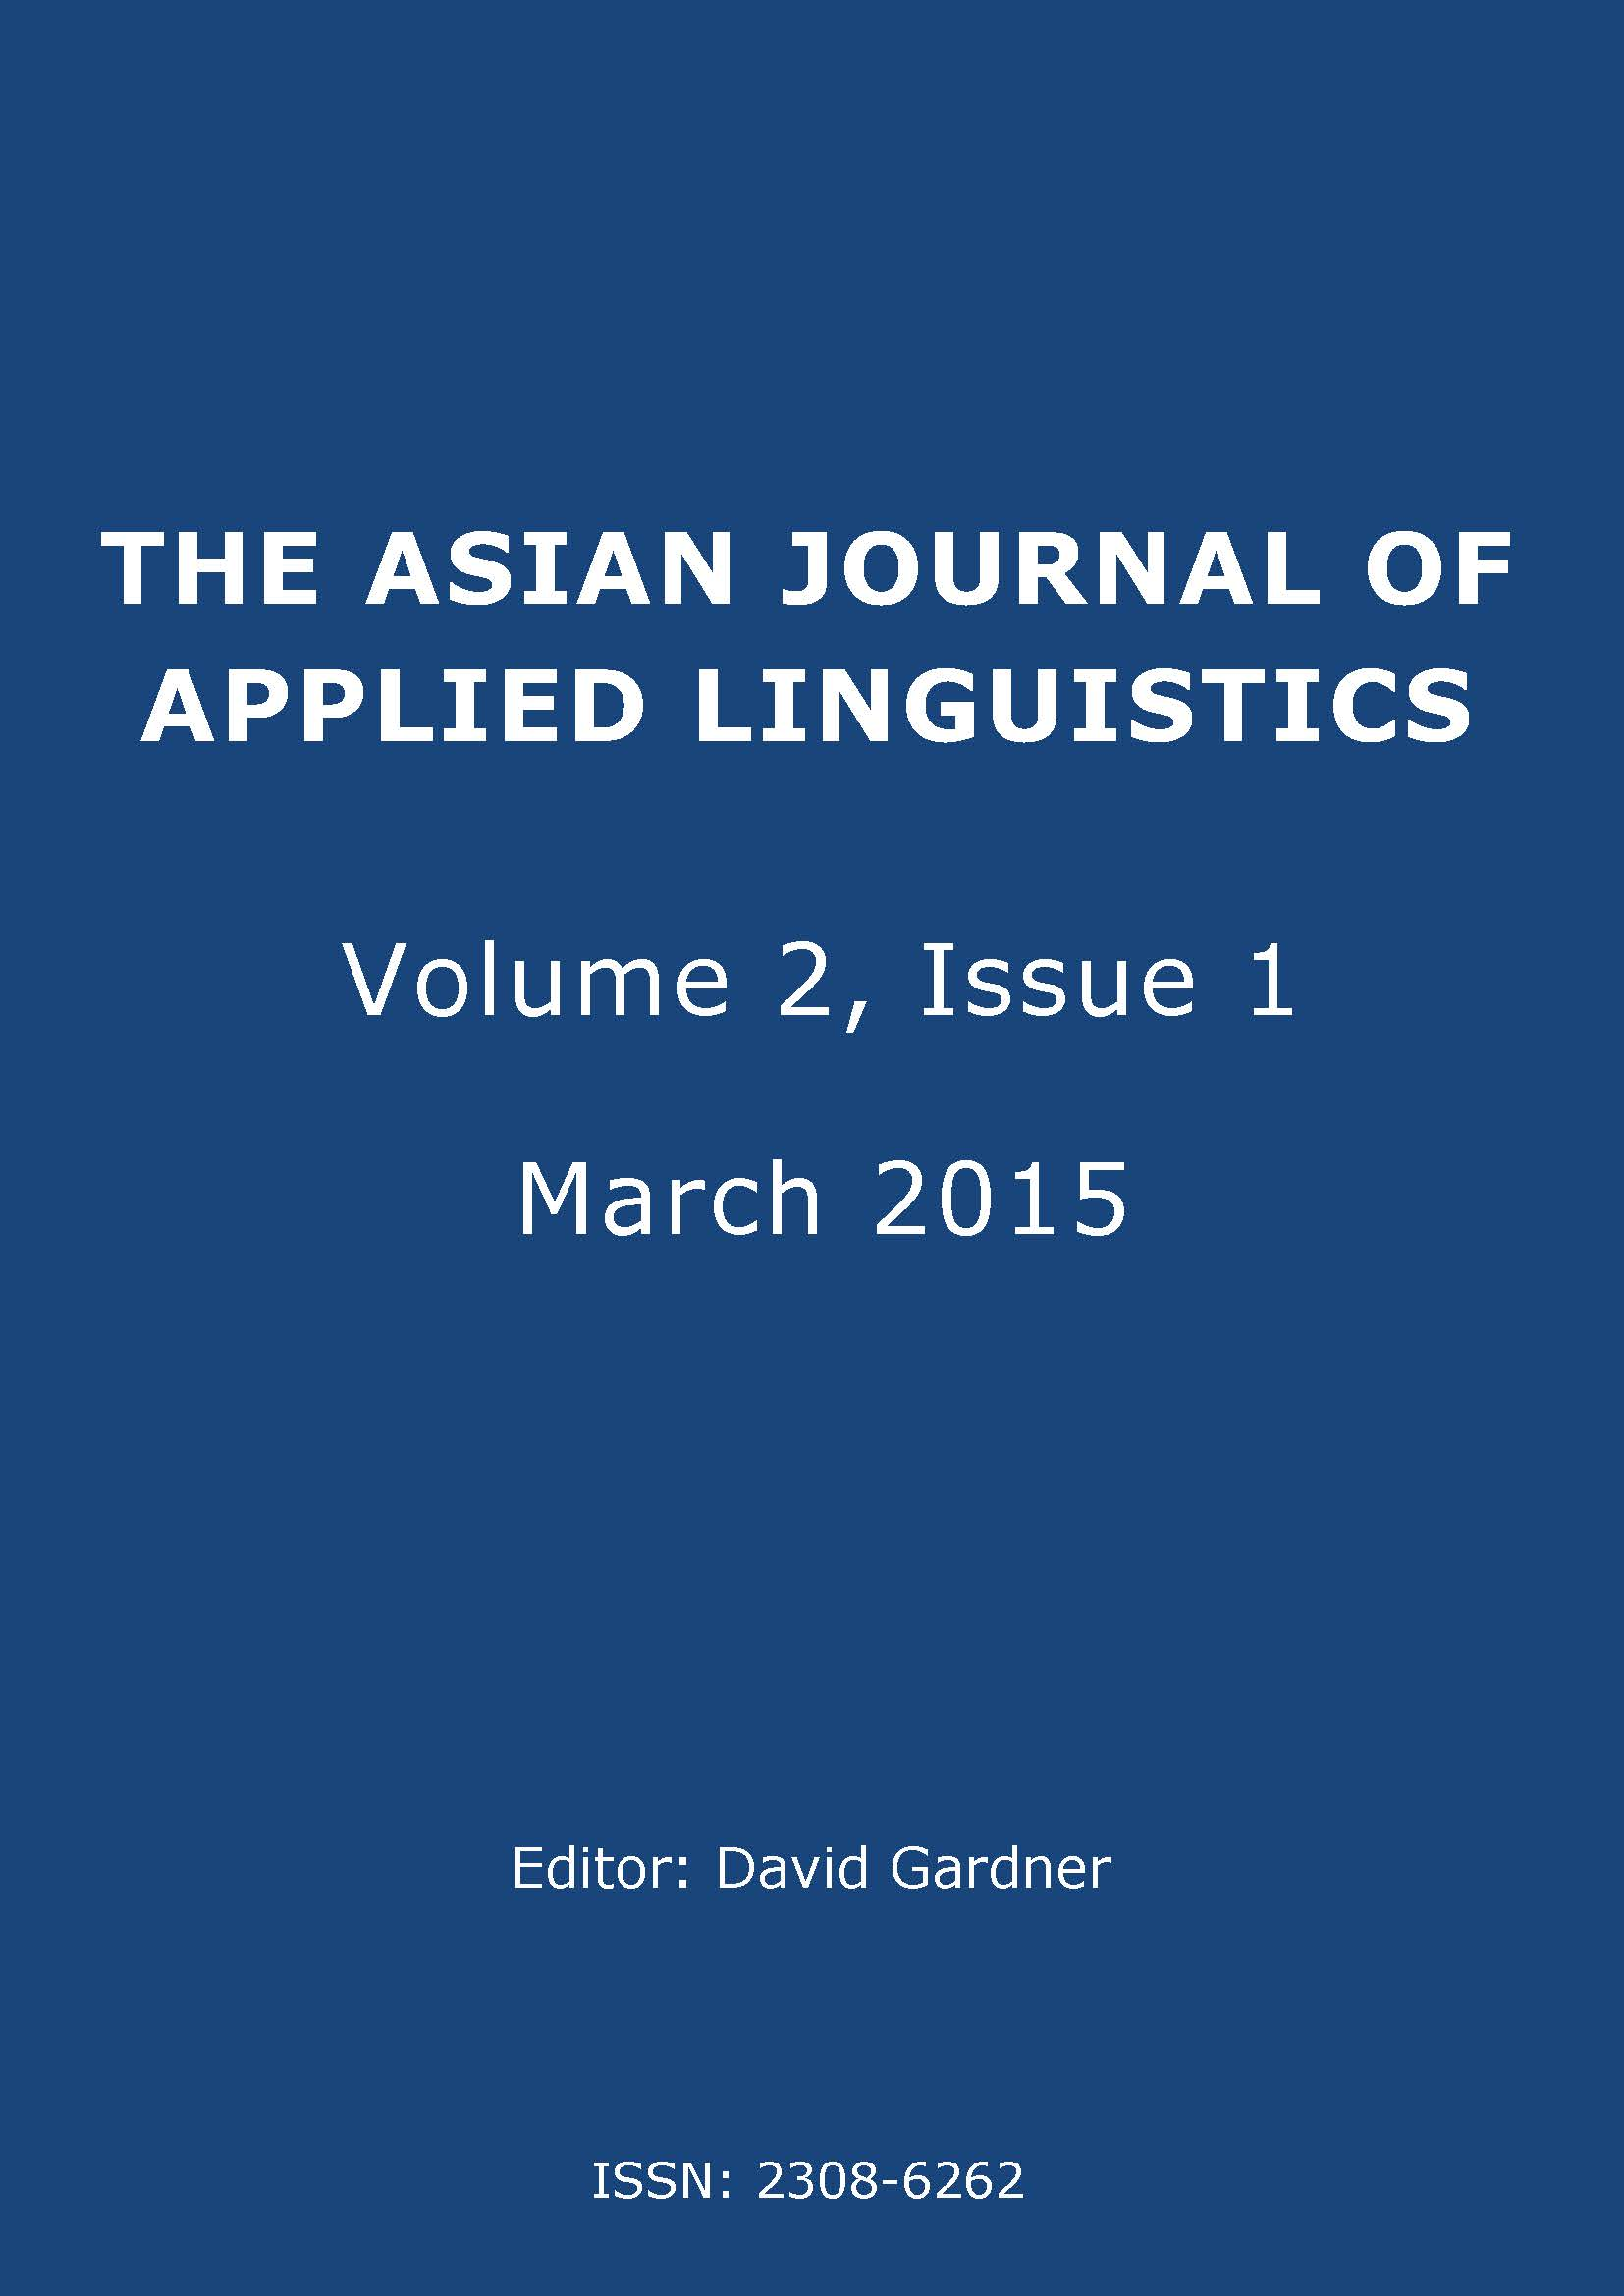 The Asian Journal of Applied Linguistics. Volume 2. Issue 1. March 2015